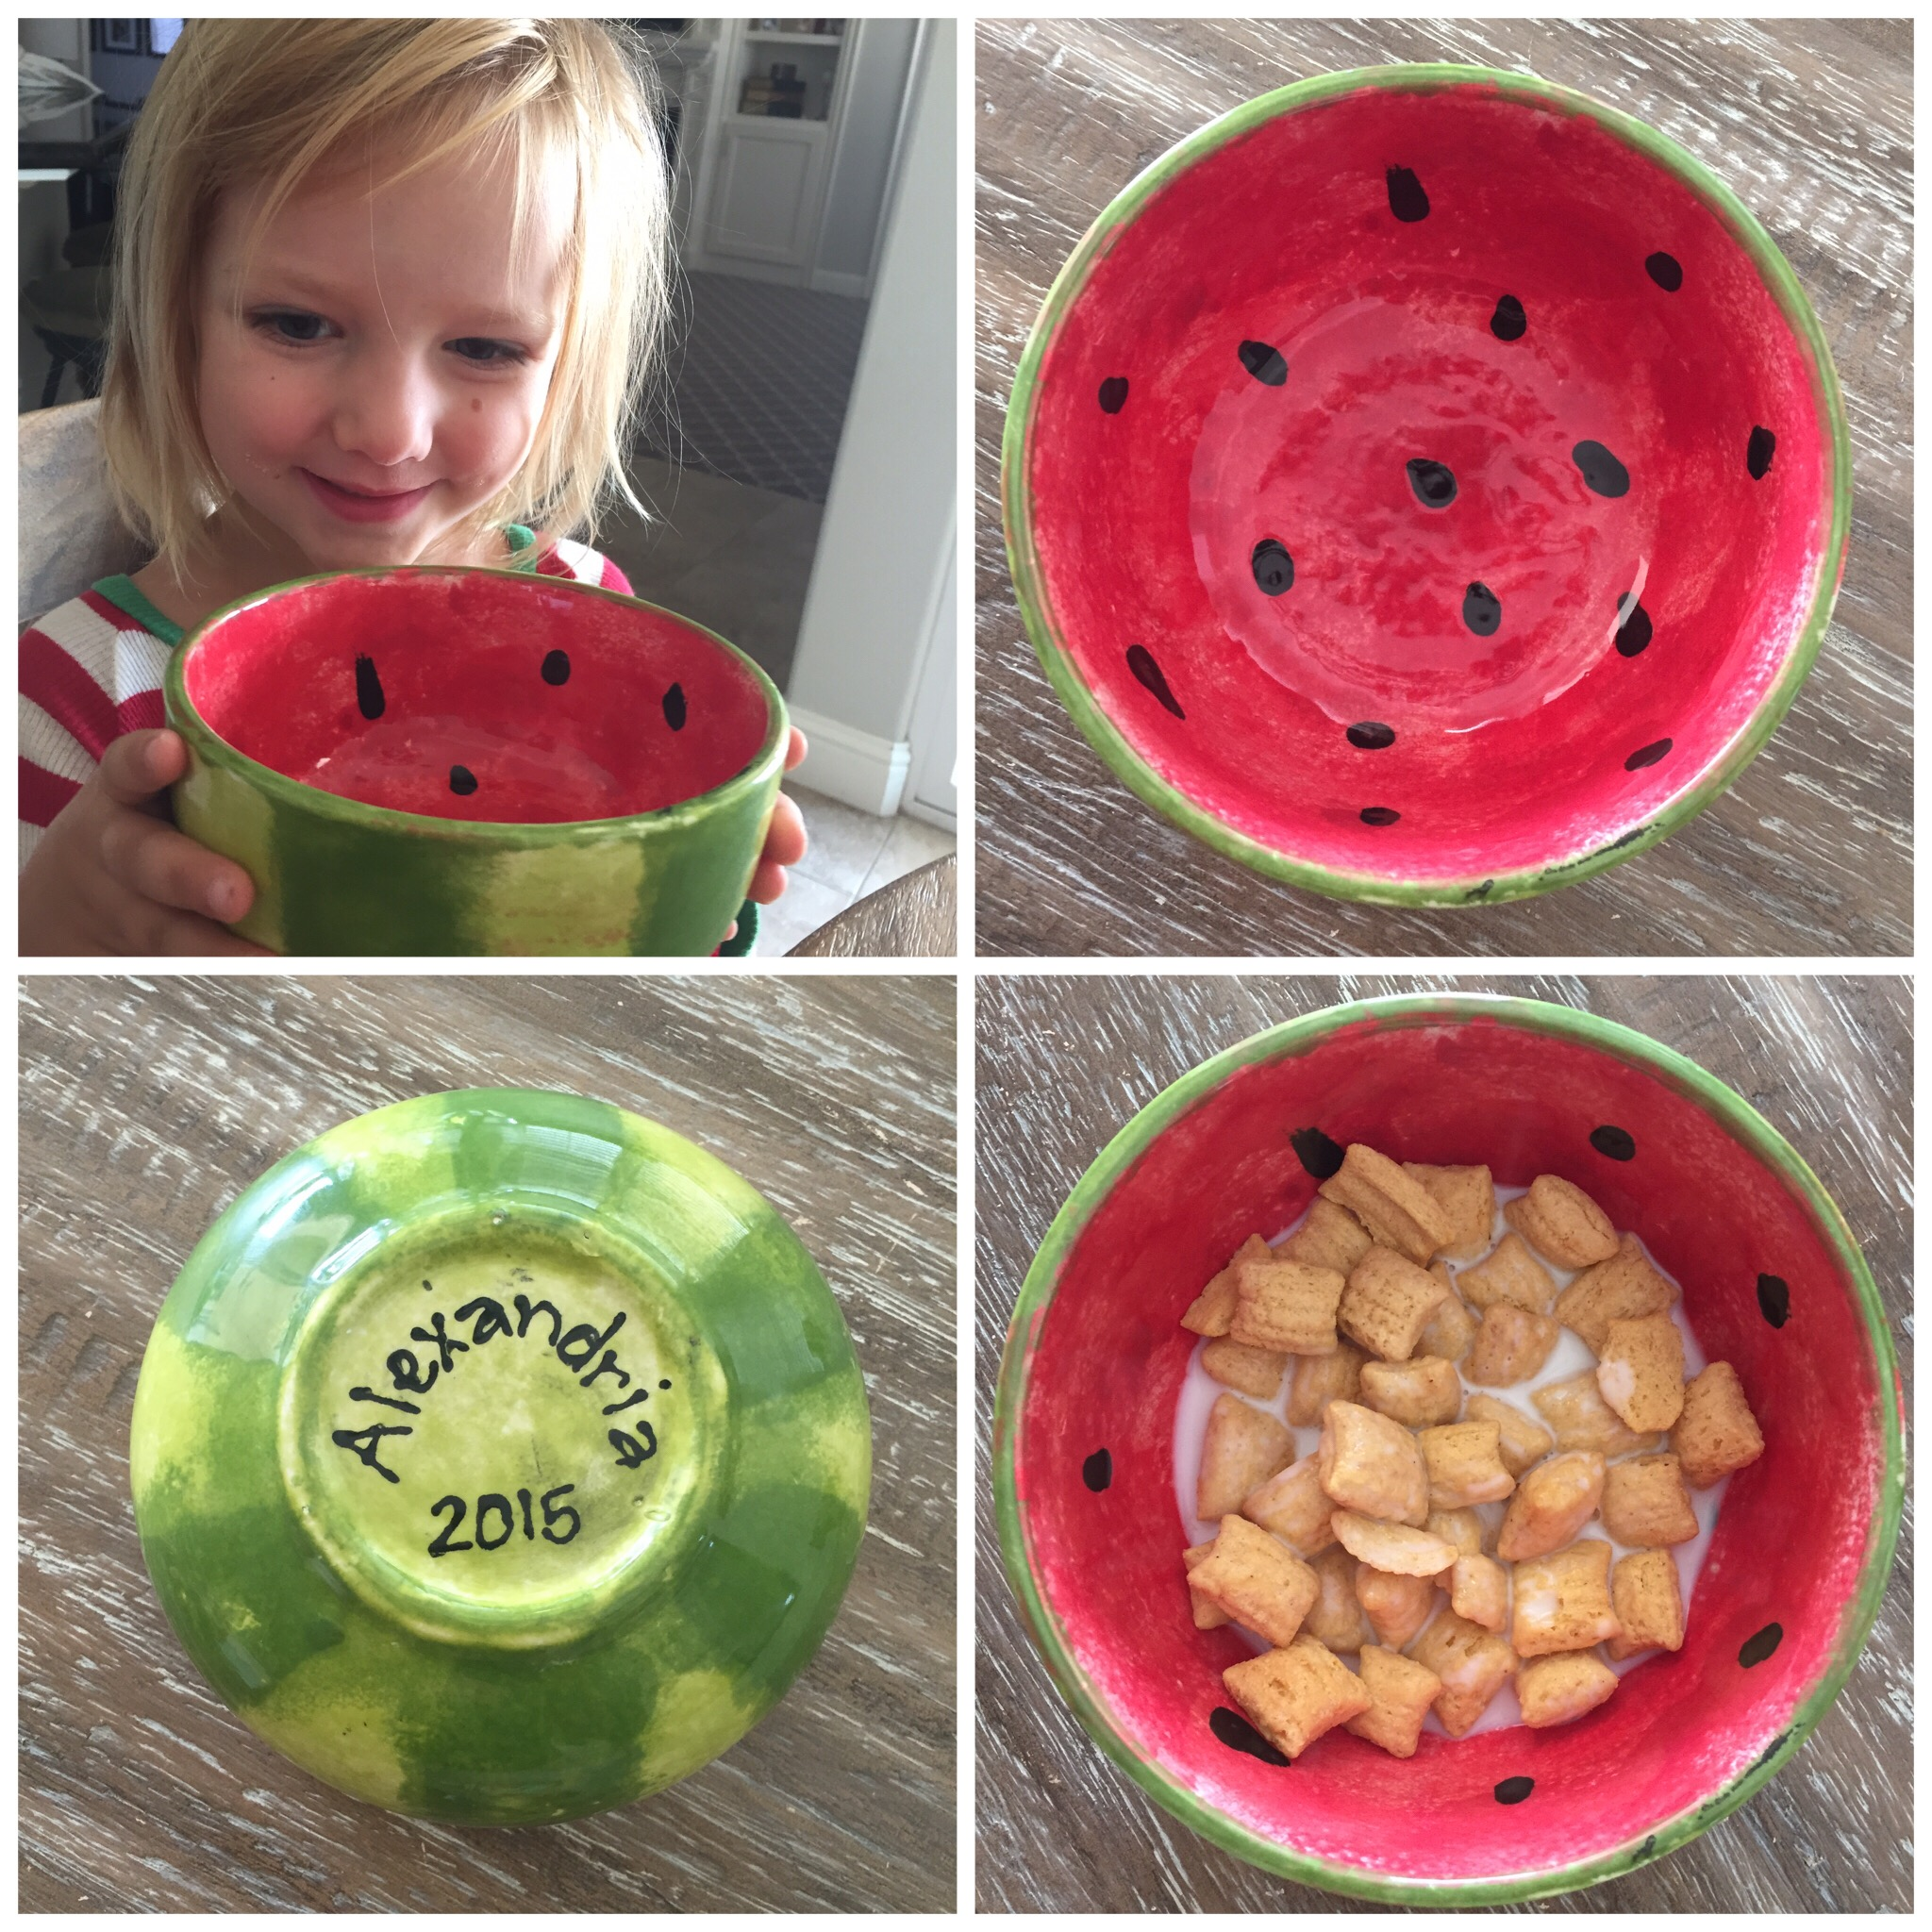 Planning regular Mommy Daughter Dates- Project 1: Watermelon Bowl. www.ChefShayna.com